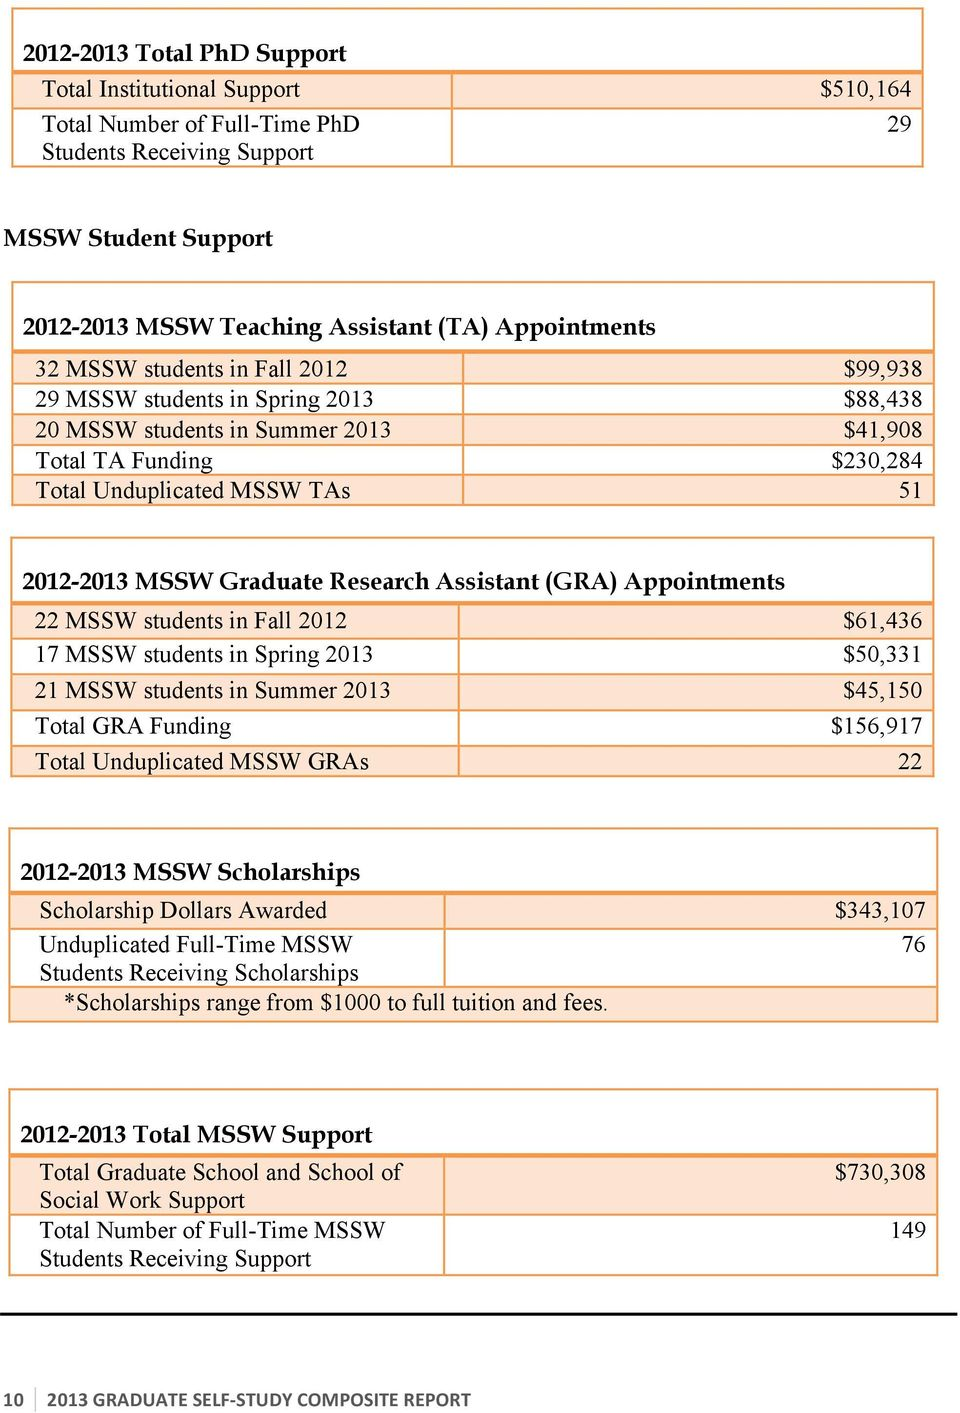 Research Assistant (GRA) Appointments 22 MSSW students in Fall 2012 $61,436 17 MSSW students in Spring 2013 $50,331 21 MSSW students in Summer 2013 $45,150 Total GRA Funding $156,917 Total